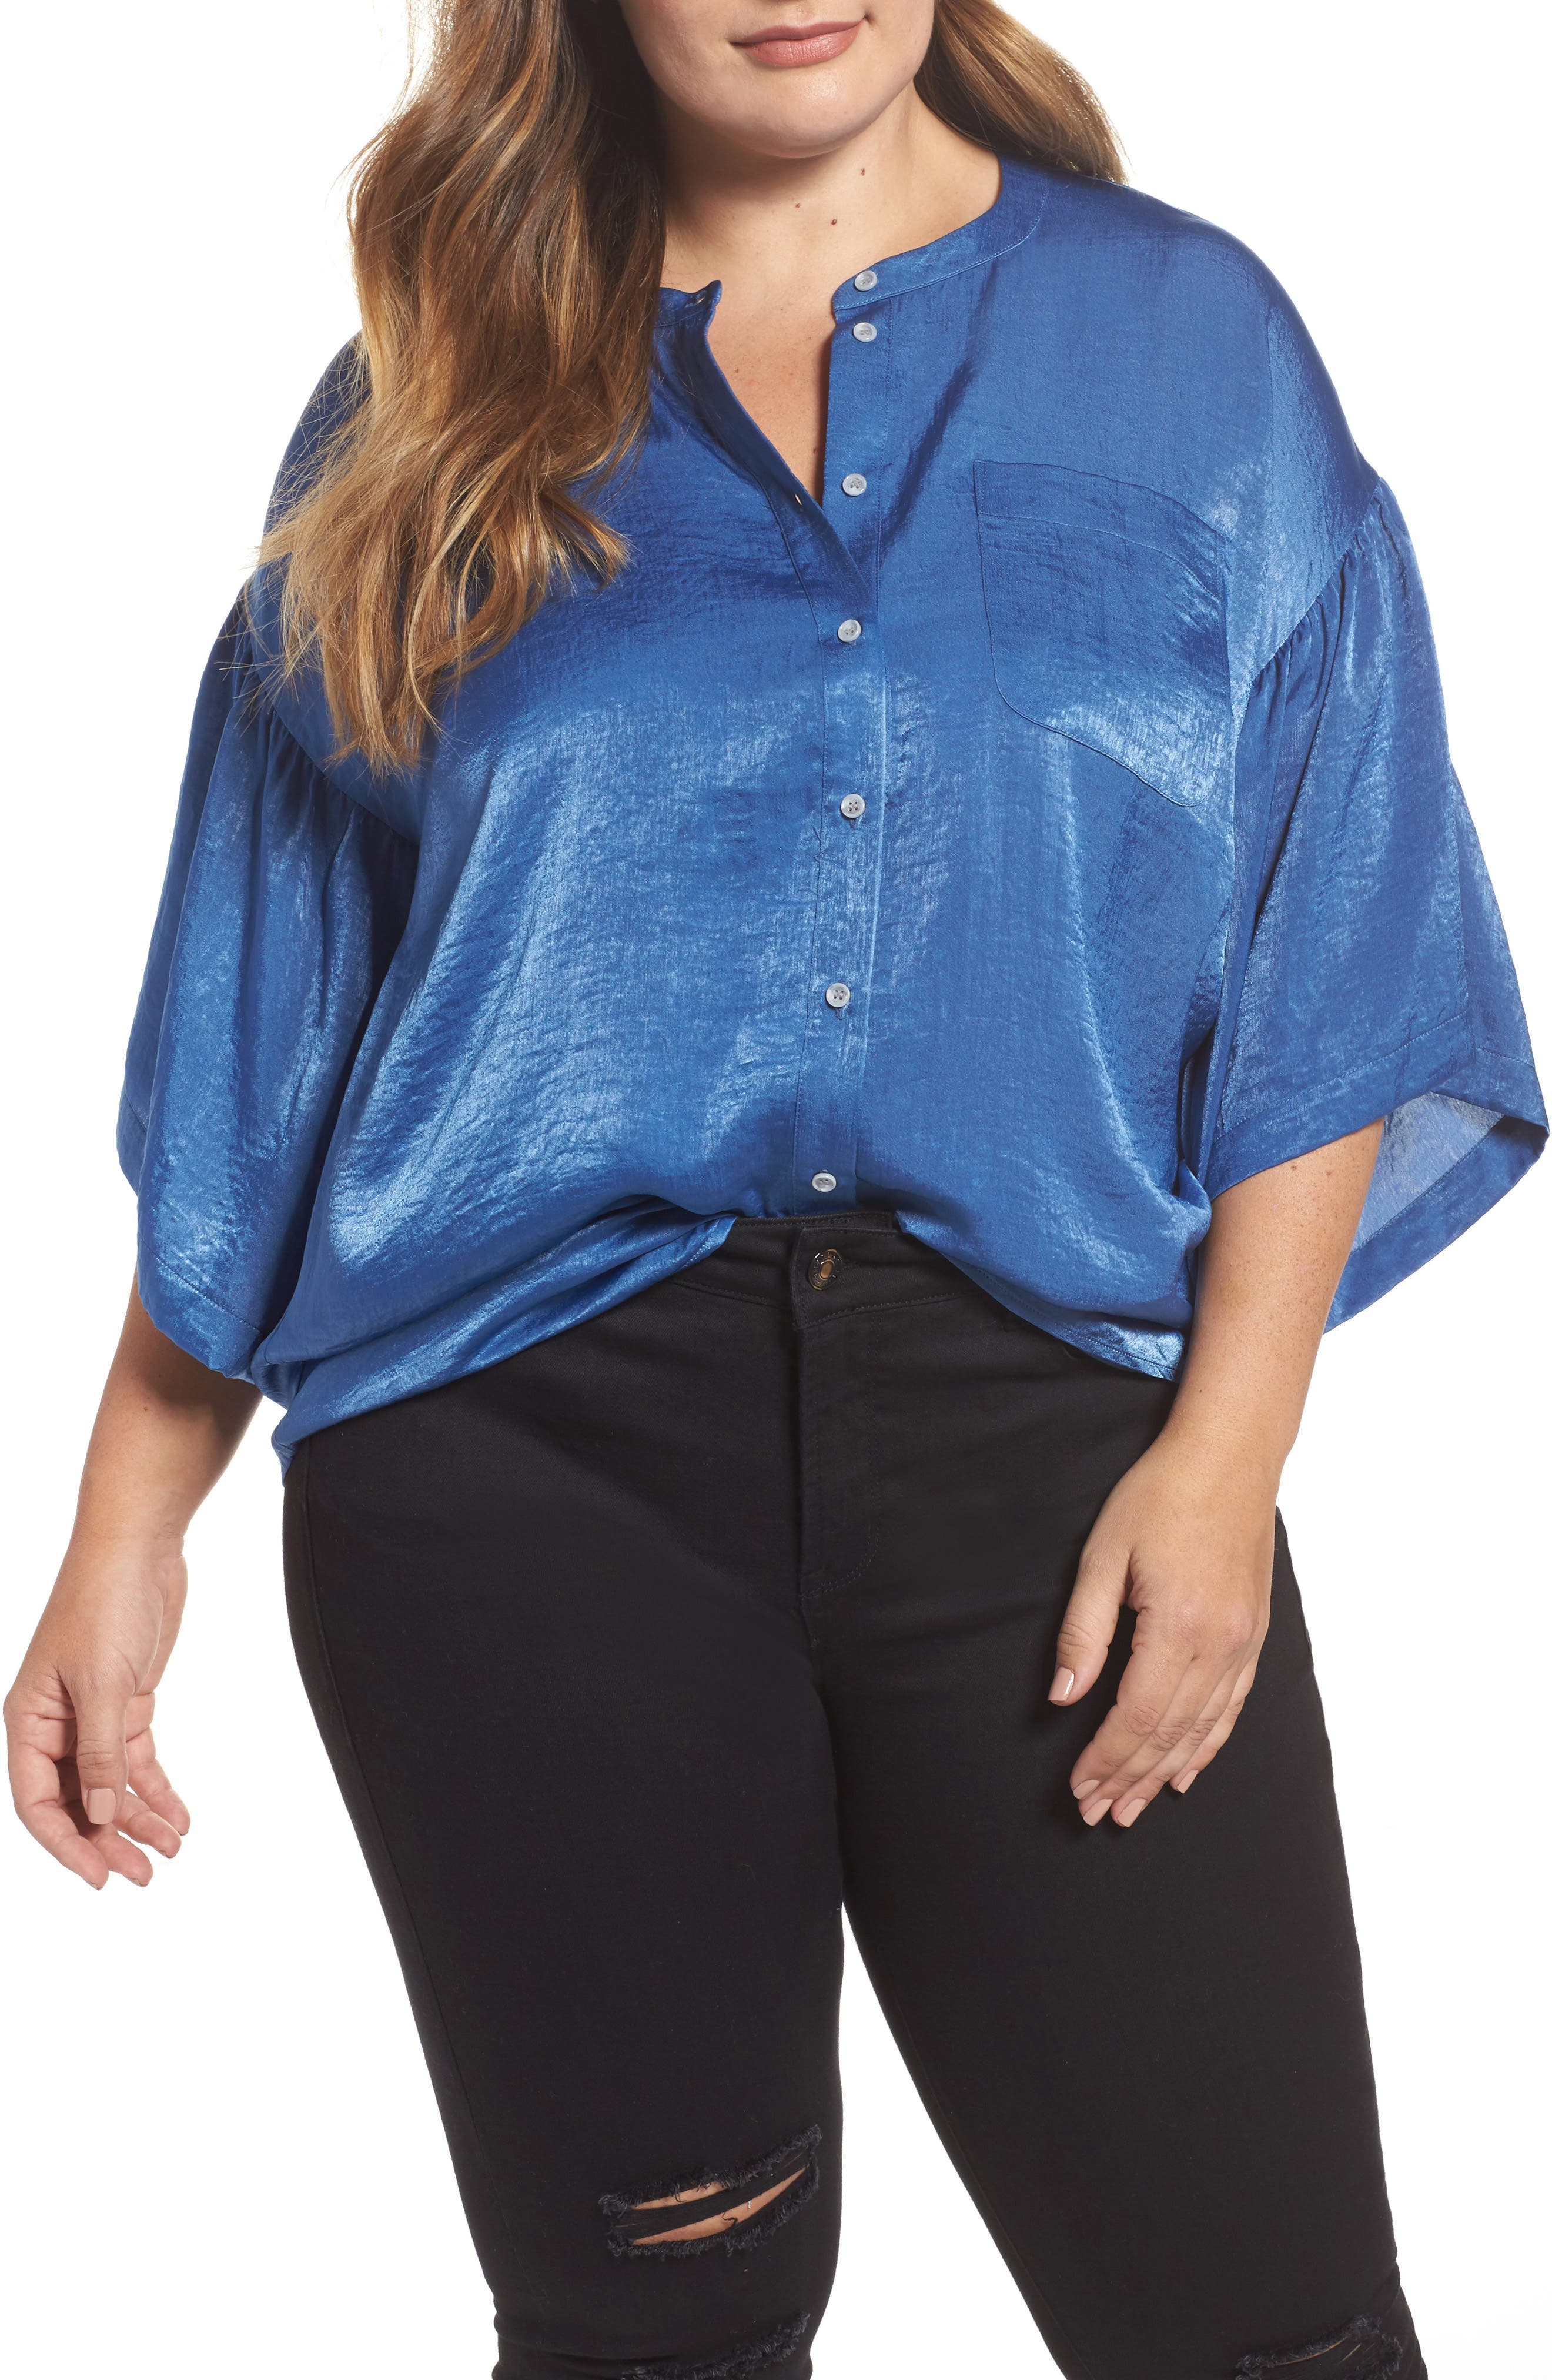 Bell Sleeve Rumpled Satin Blouse,                         Main,                         color, 322-Divine Blue